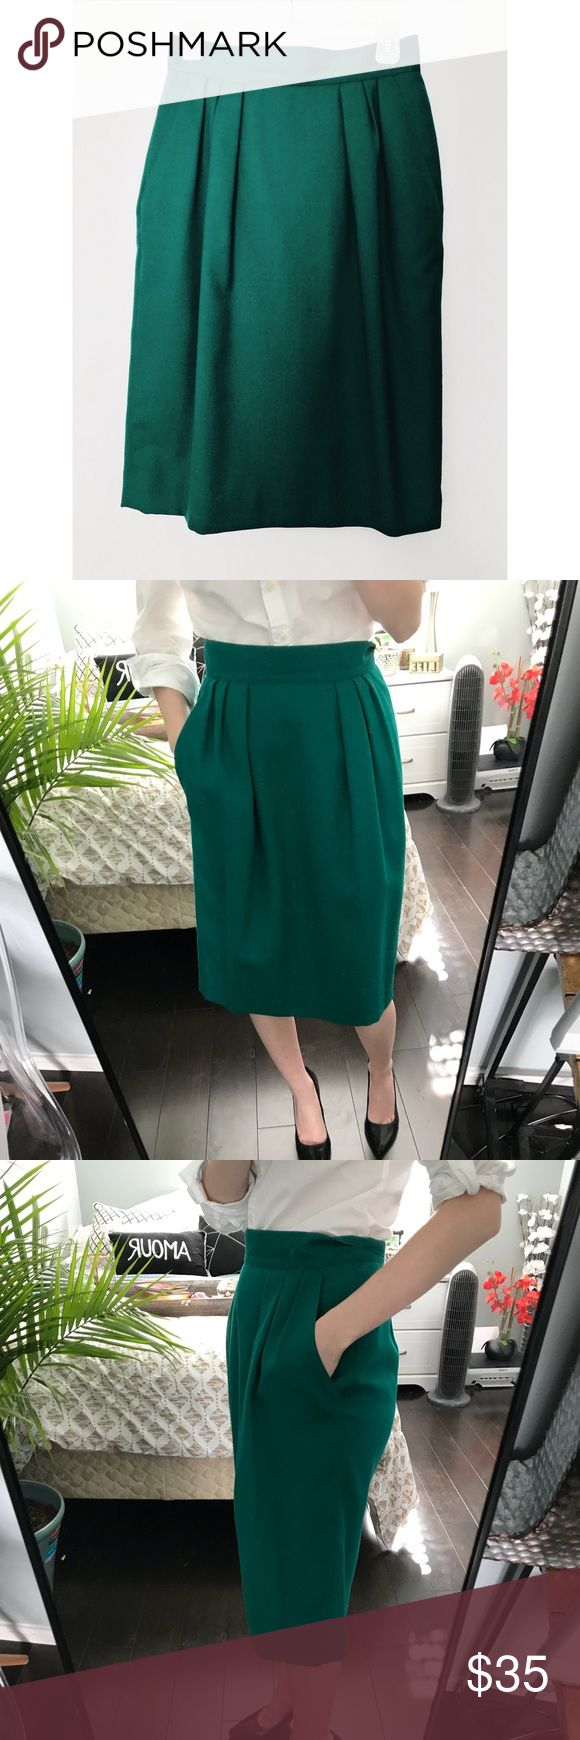 Vintage wool green pencil skirt Fully lined and has pockets! Gorgeous emerald color. The pics are true to color. Vintage size 8 fits a 00 or 0! If you have any questions feel free to ask. I have a great bundle discount! Like it? Bundle it and I'll make you a private offer! Jones Wear Skirts Pencil